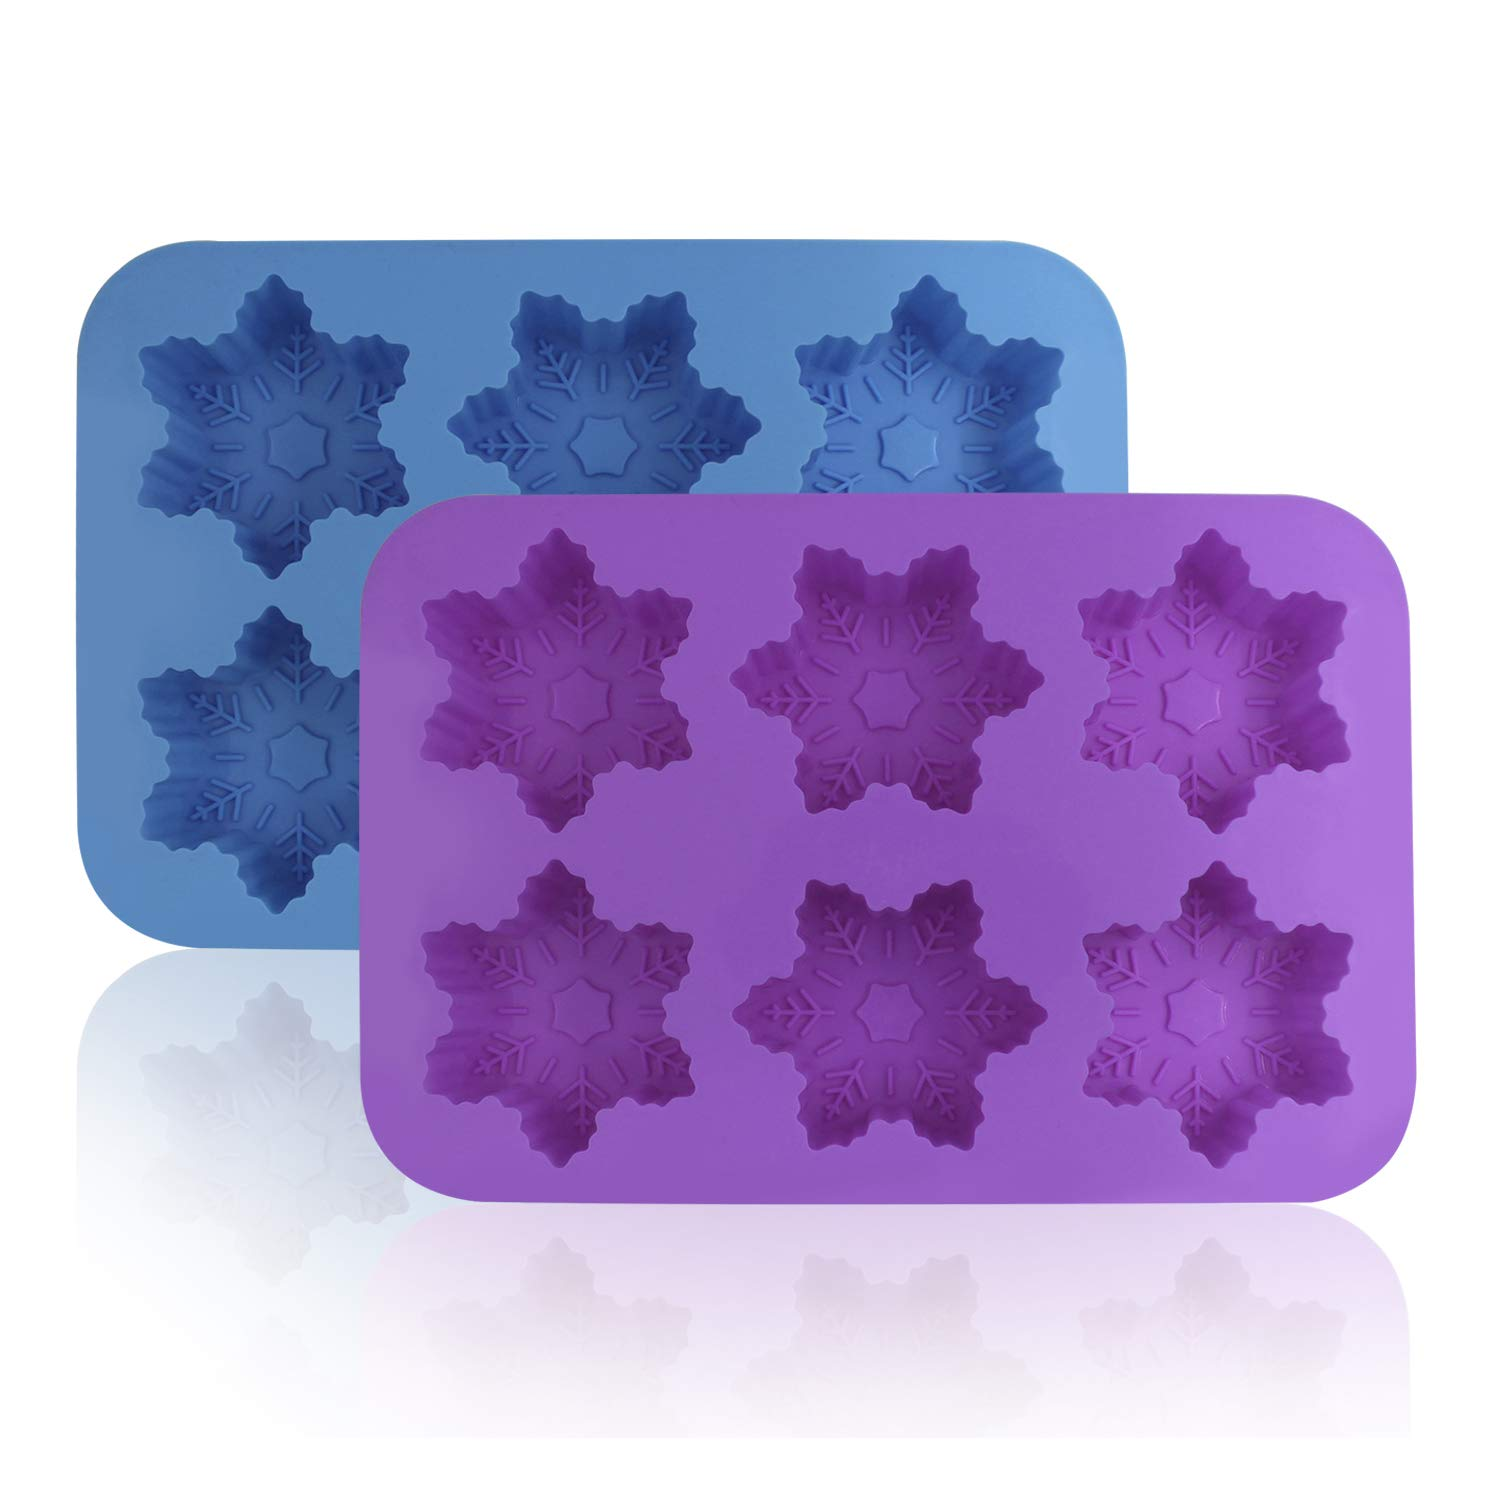 Silicone Snowflake Molds, FineGood 2 Pack Cake Pans Cookie Trays Handmade Soap Making Moulds, Also for Chocolate Pudding Jelly Muffin Cups Kitchen Baking Decoration, 6-Cavity - Blue, Purple 4336903014